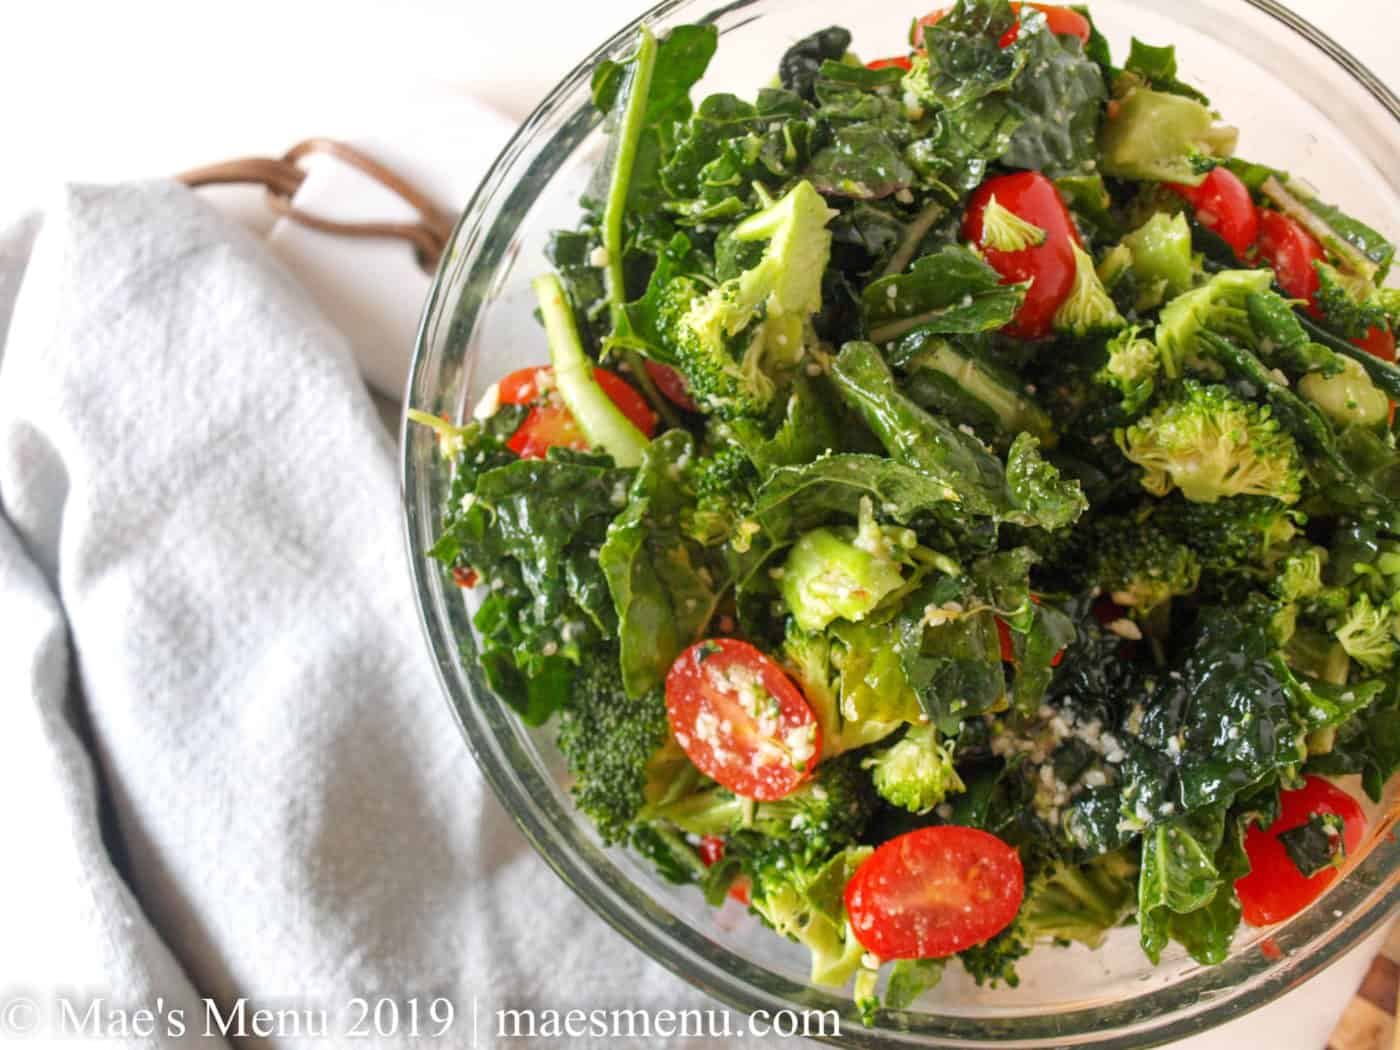 Broccoli & Kale Salad With Spicy Lemon Parmesan Dressing | Mae's Menu